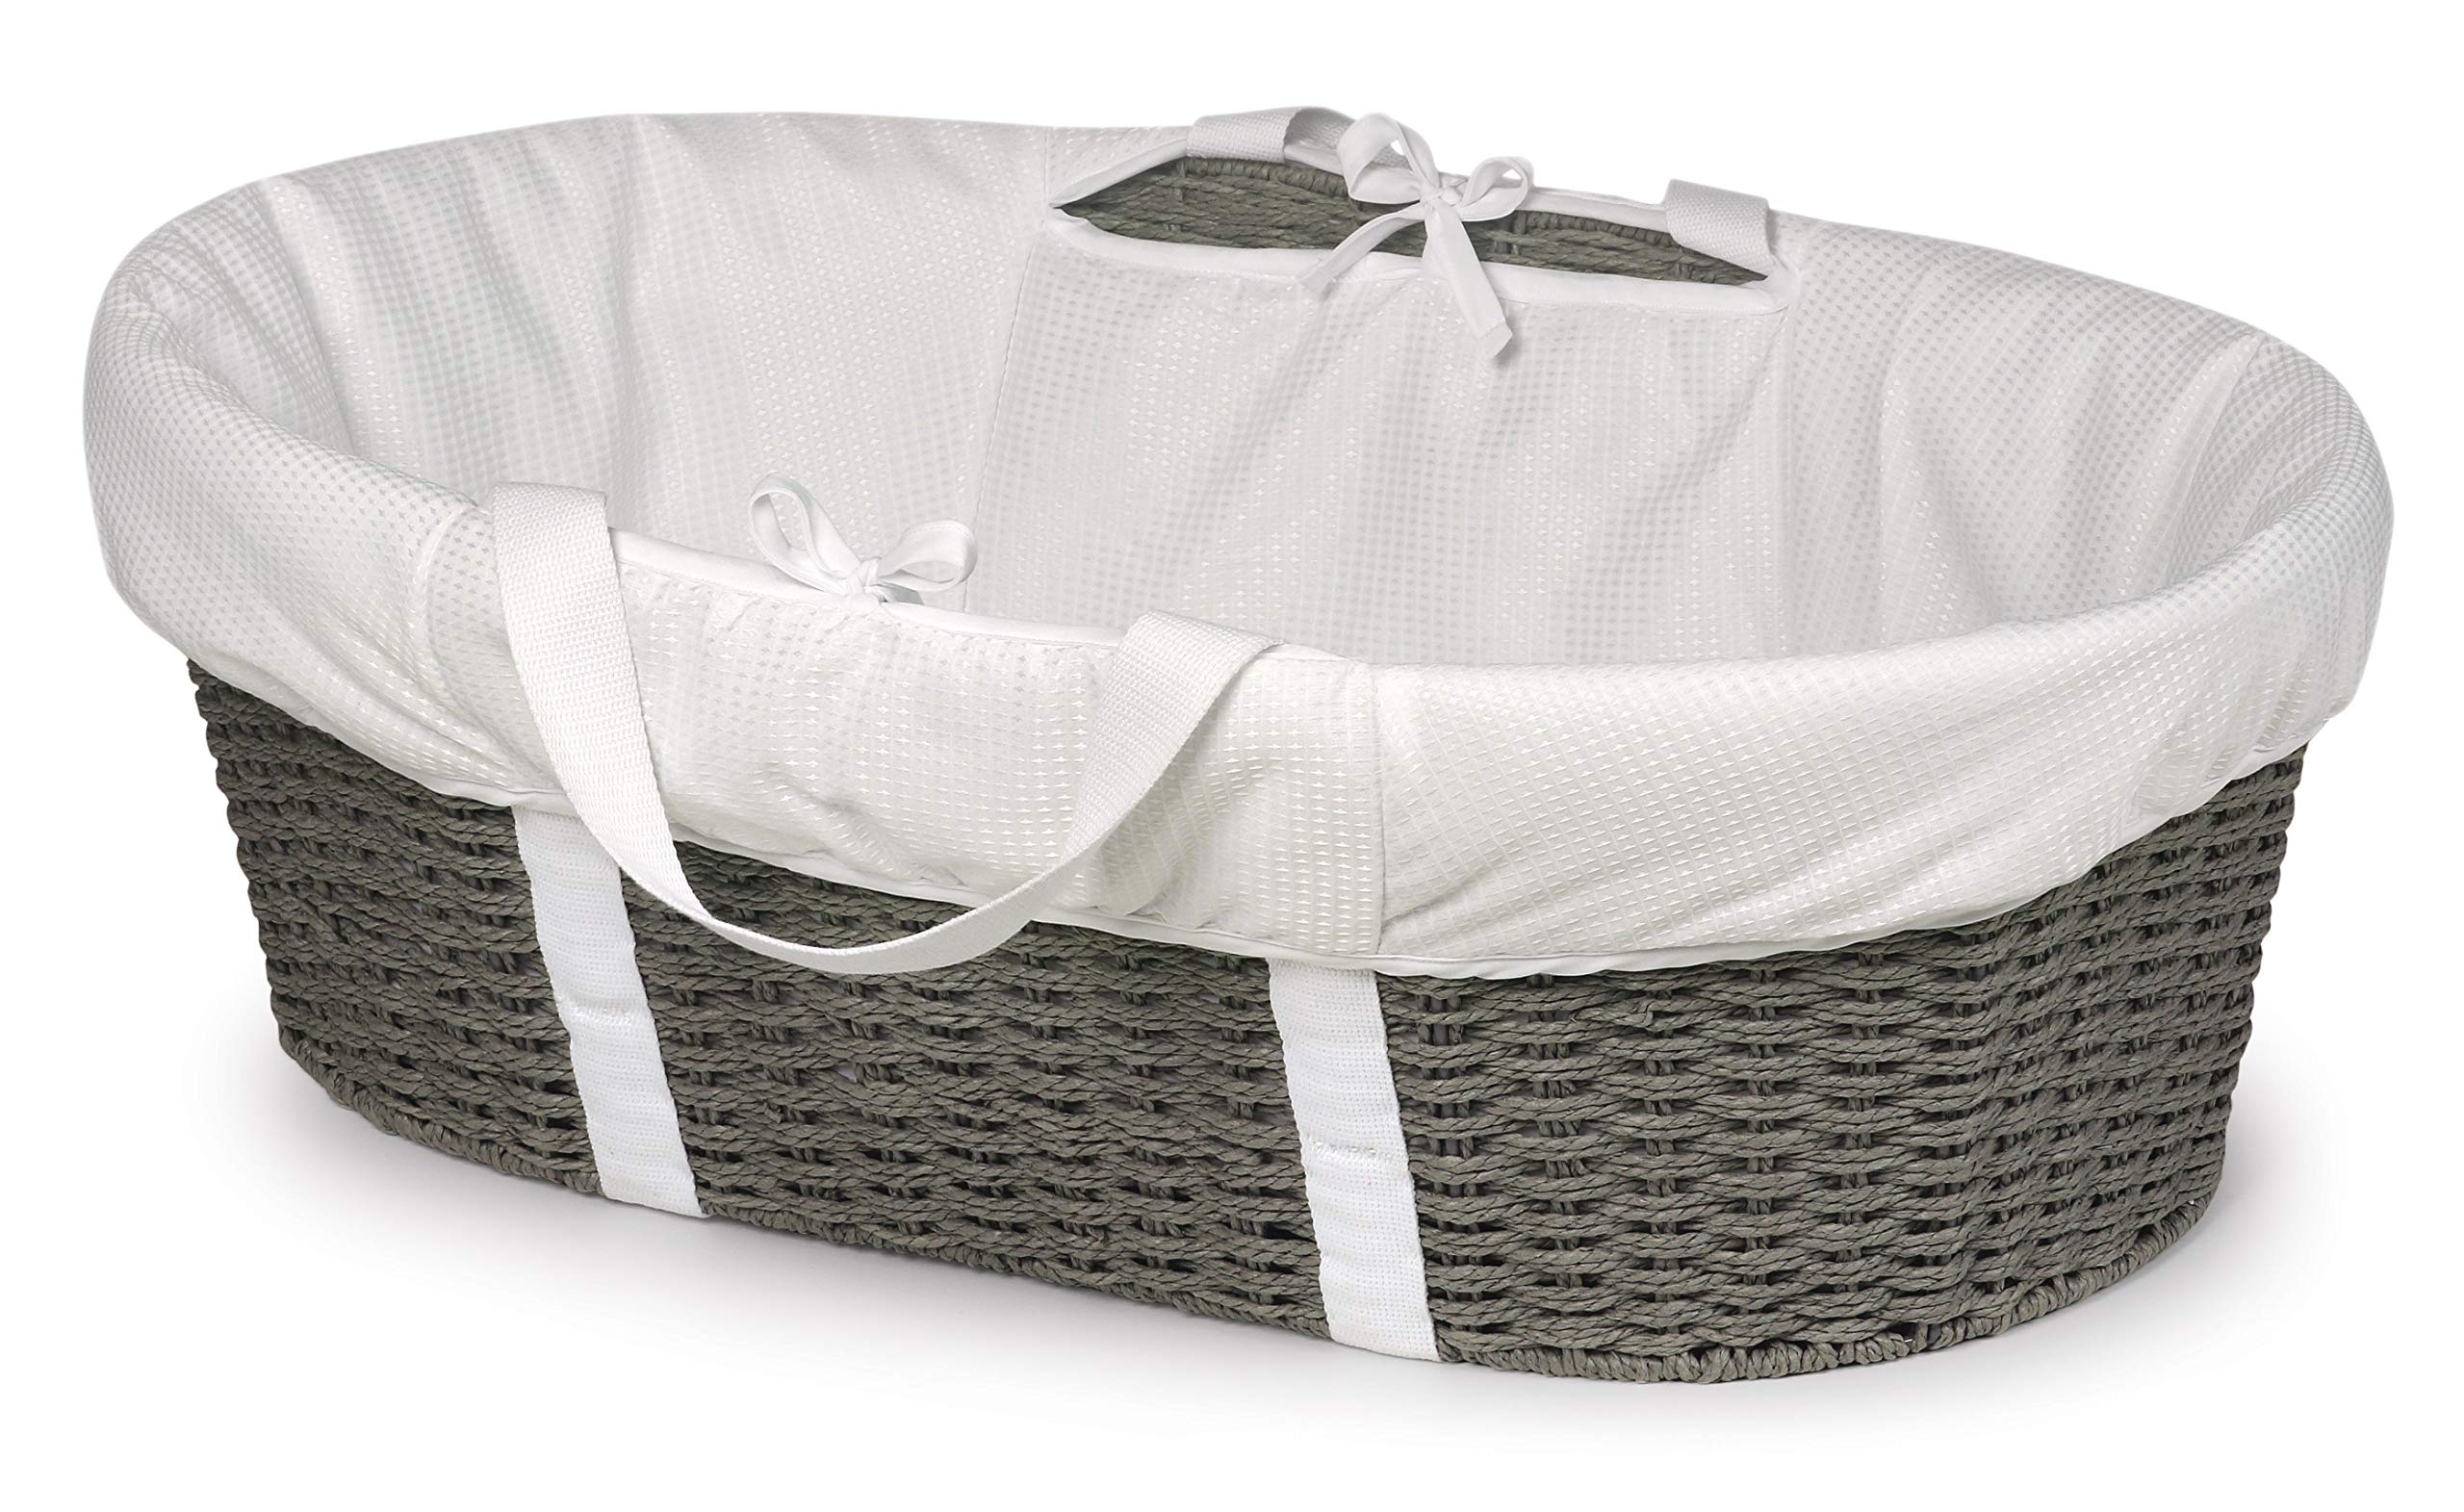 Badger Basket Wicker-Look Woven Baby Moses Basket with Bedding, Sheet, and Pad, Gray/White by Badger Basket